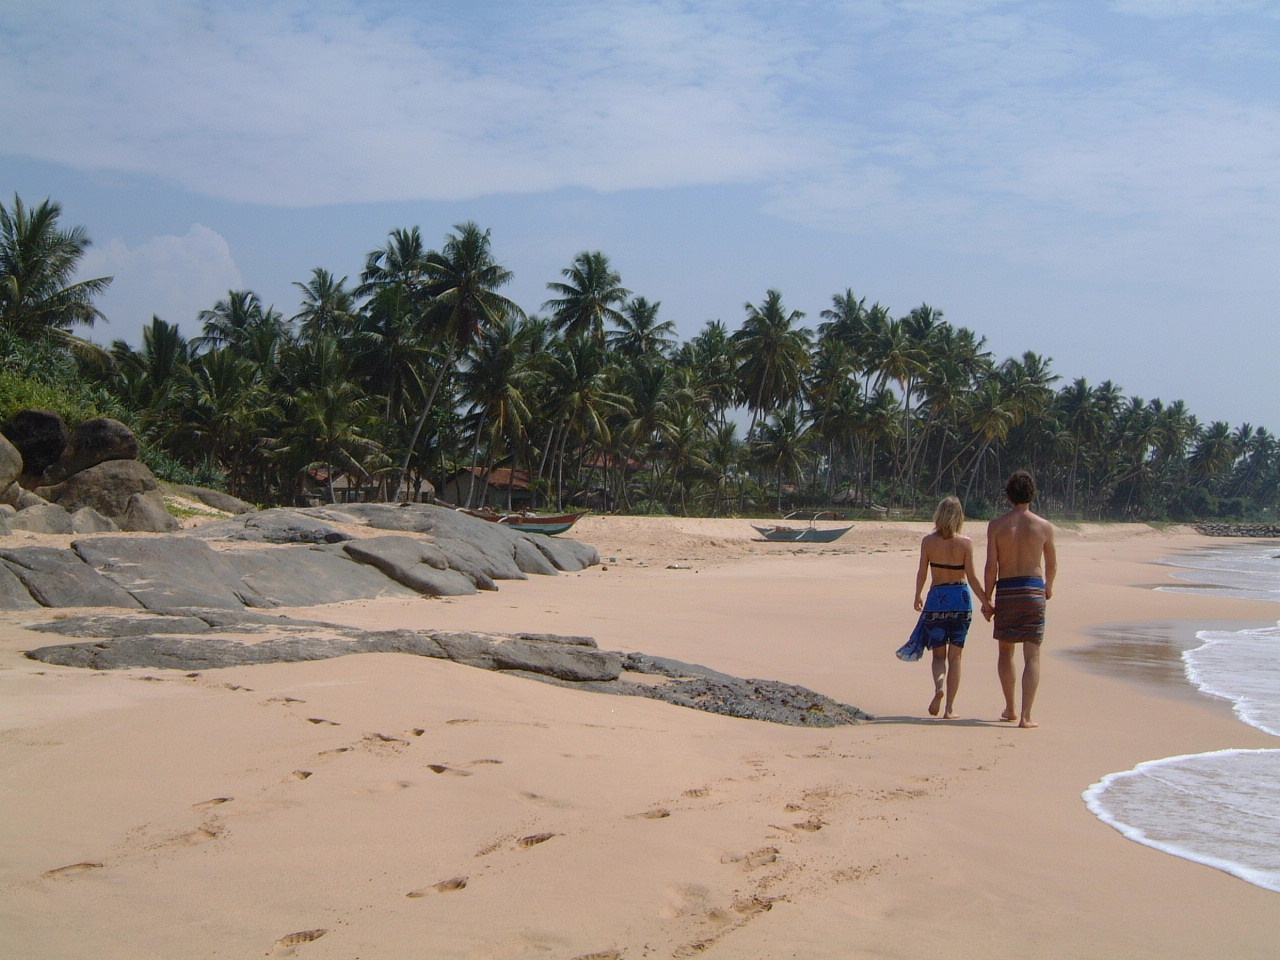 Sri Lanka relaxing vacation or honeymoon on the beach. Beautiful sands and weather.